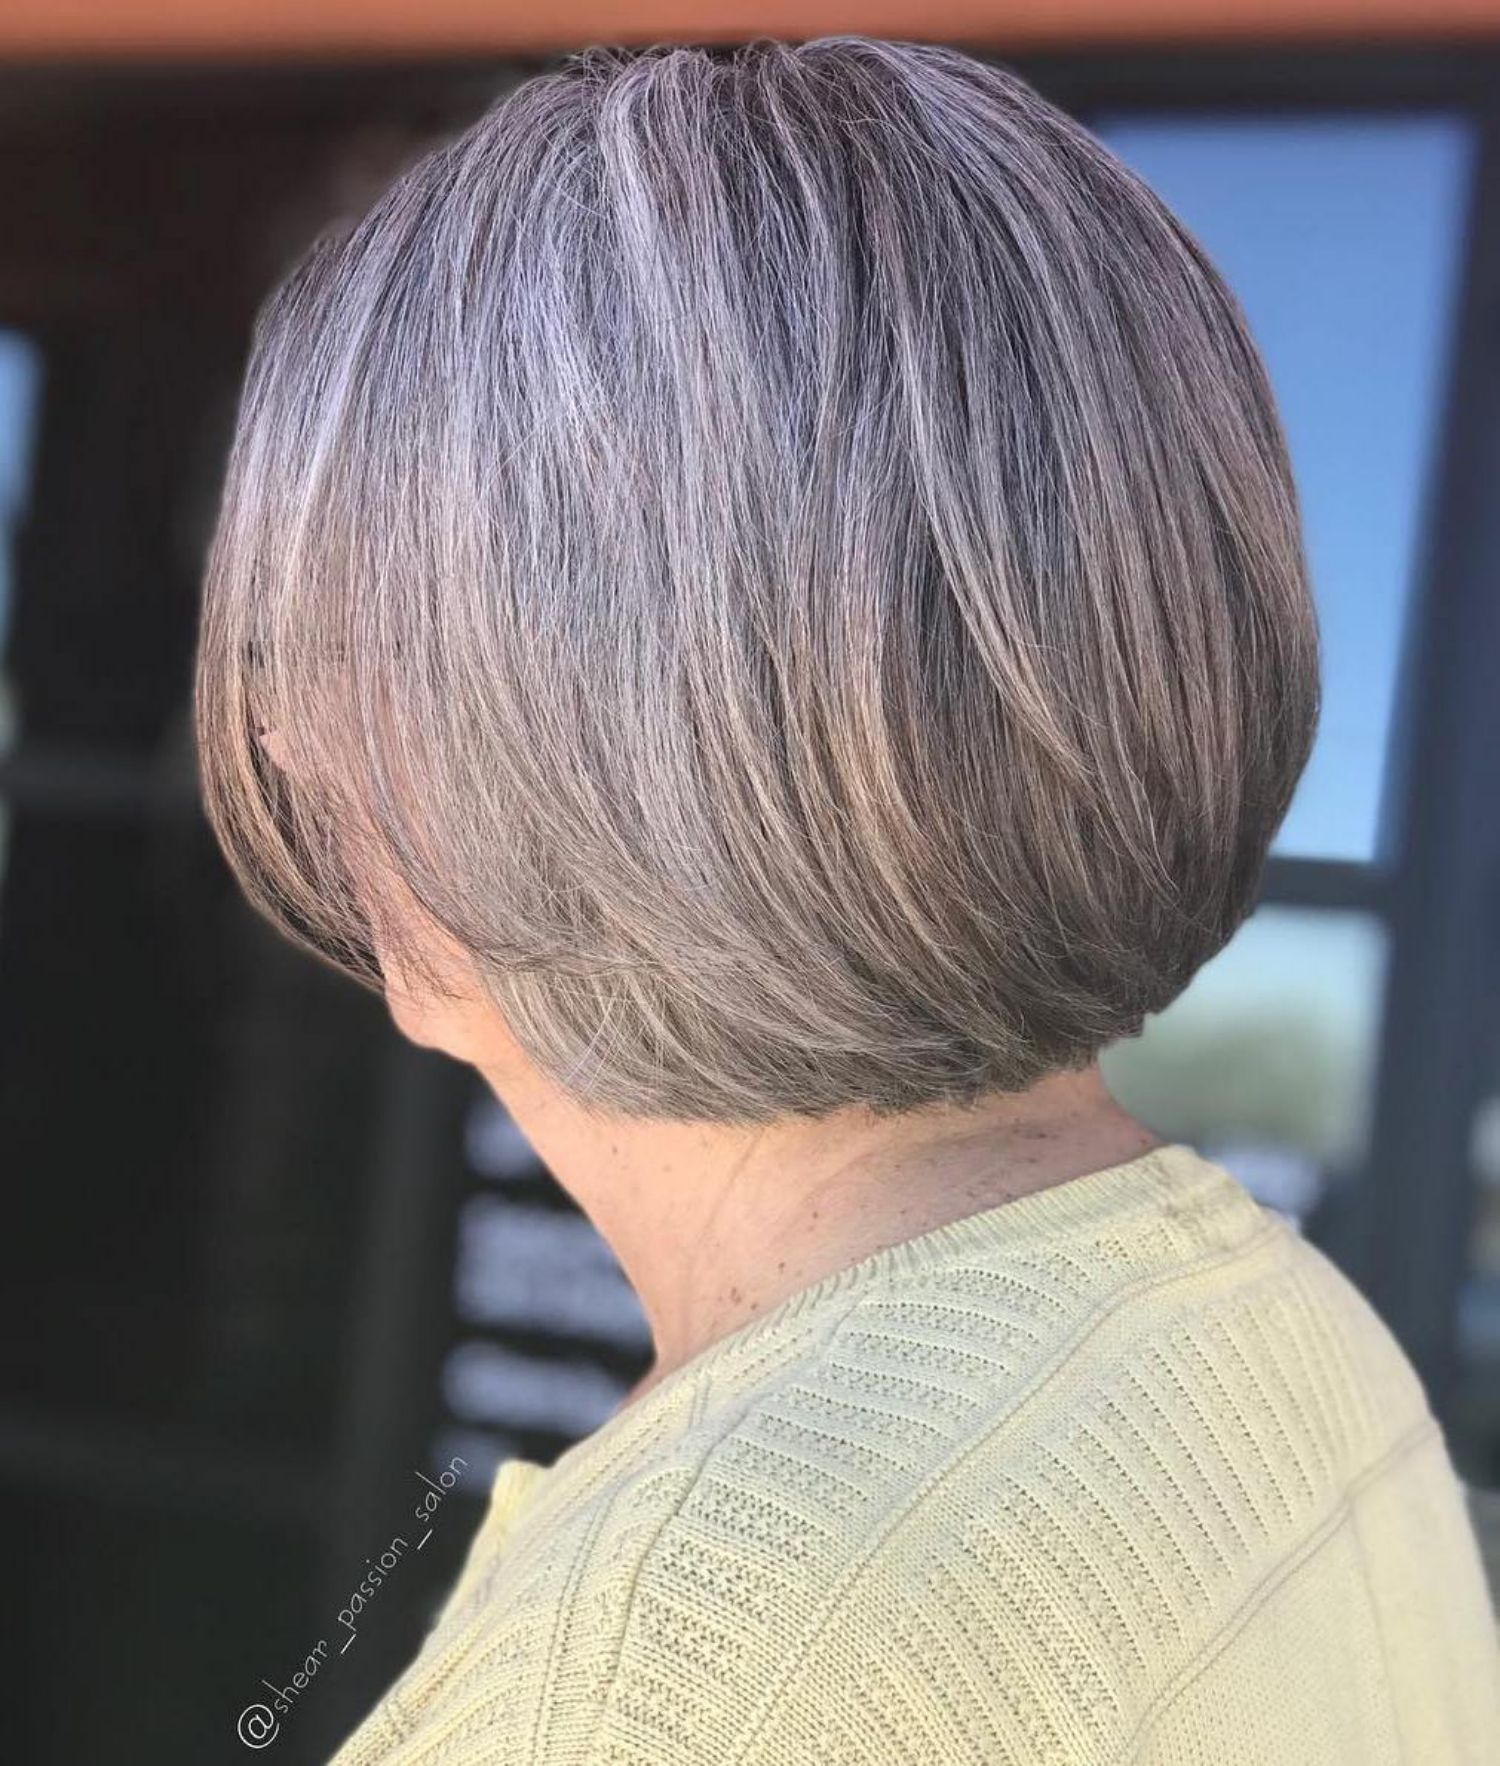 Short Gray Bob For Older Women Cool Hairstyles Older Women Hairstyles Bob Hairstyles